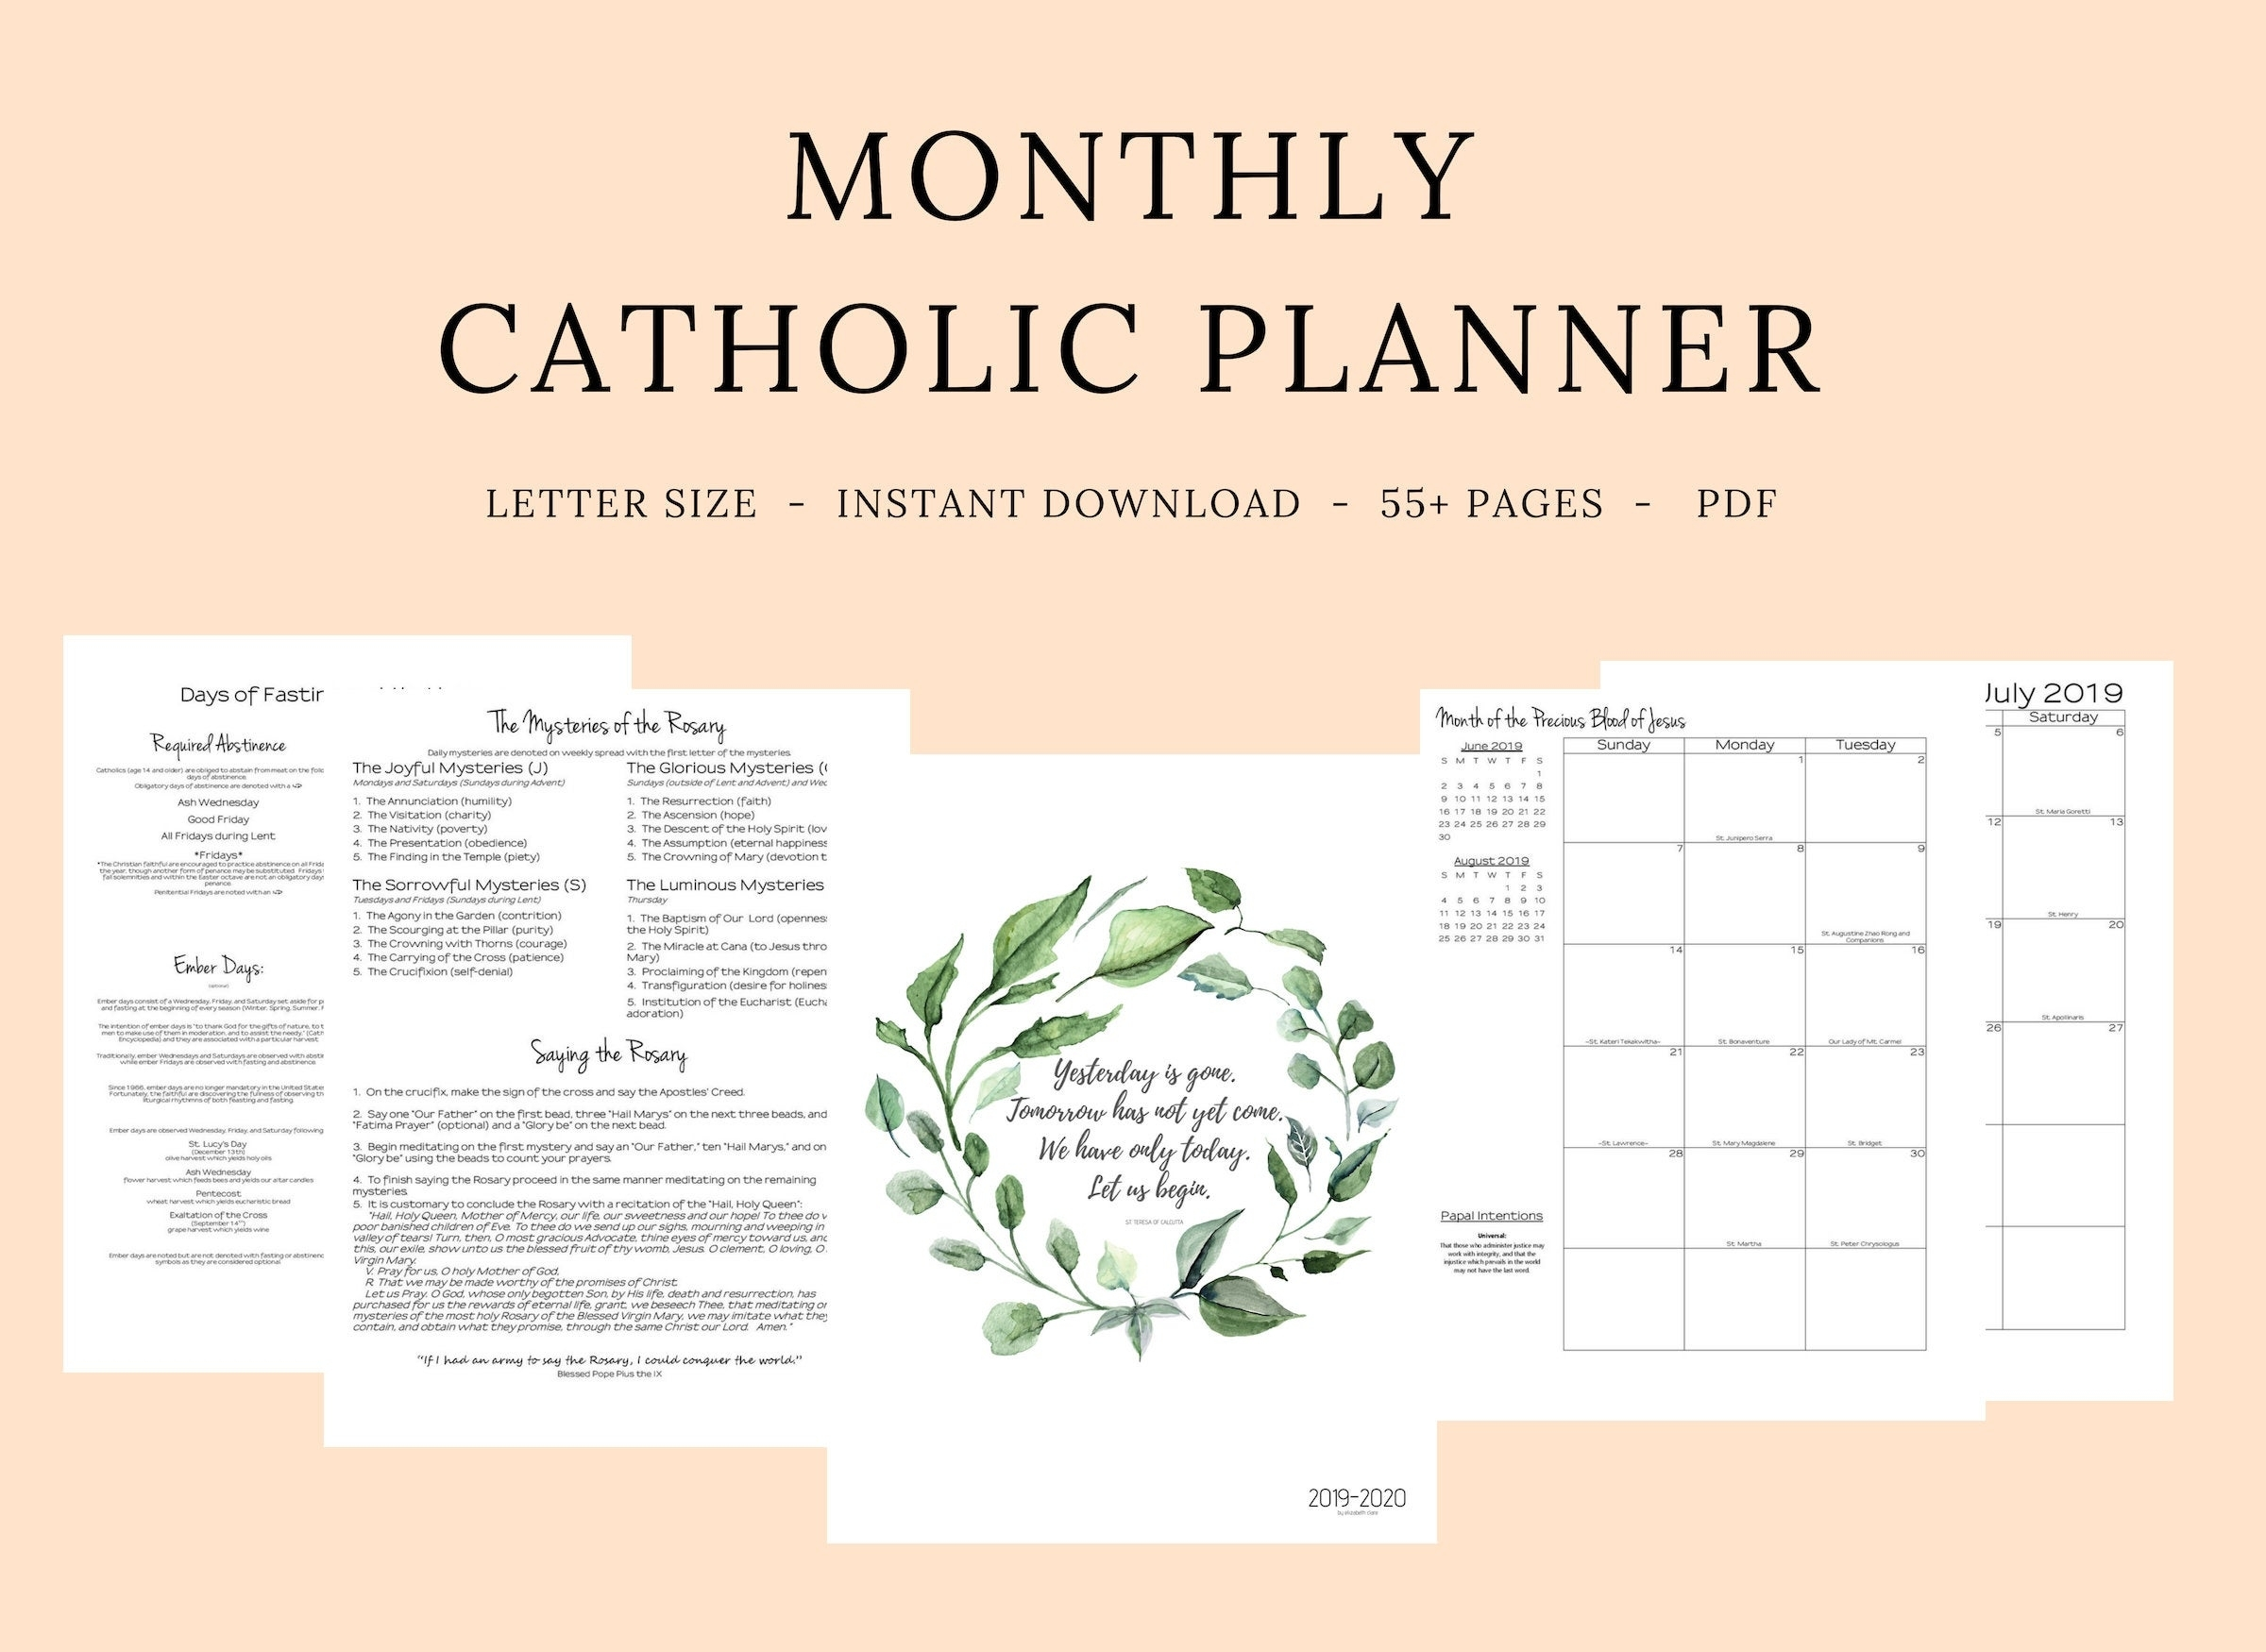 2019 2020 Catholic Planner Monthly Printable: Monthly | Etsy for Free Catholic Liturgical Calendar For 2020